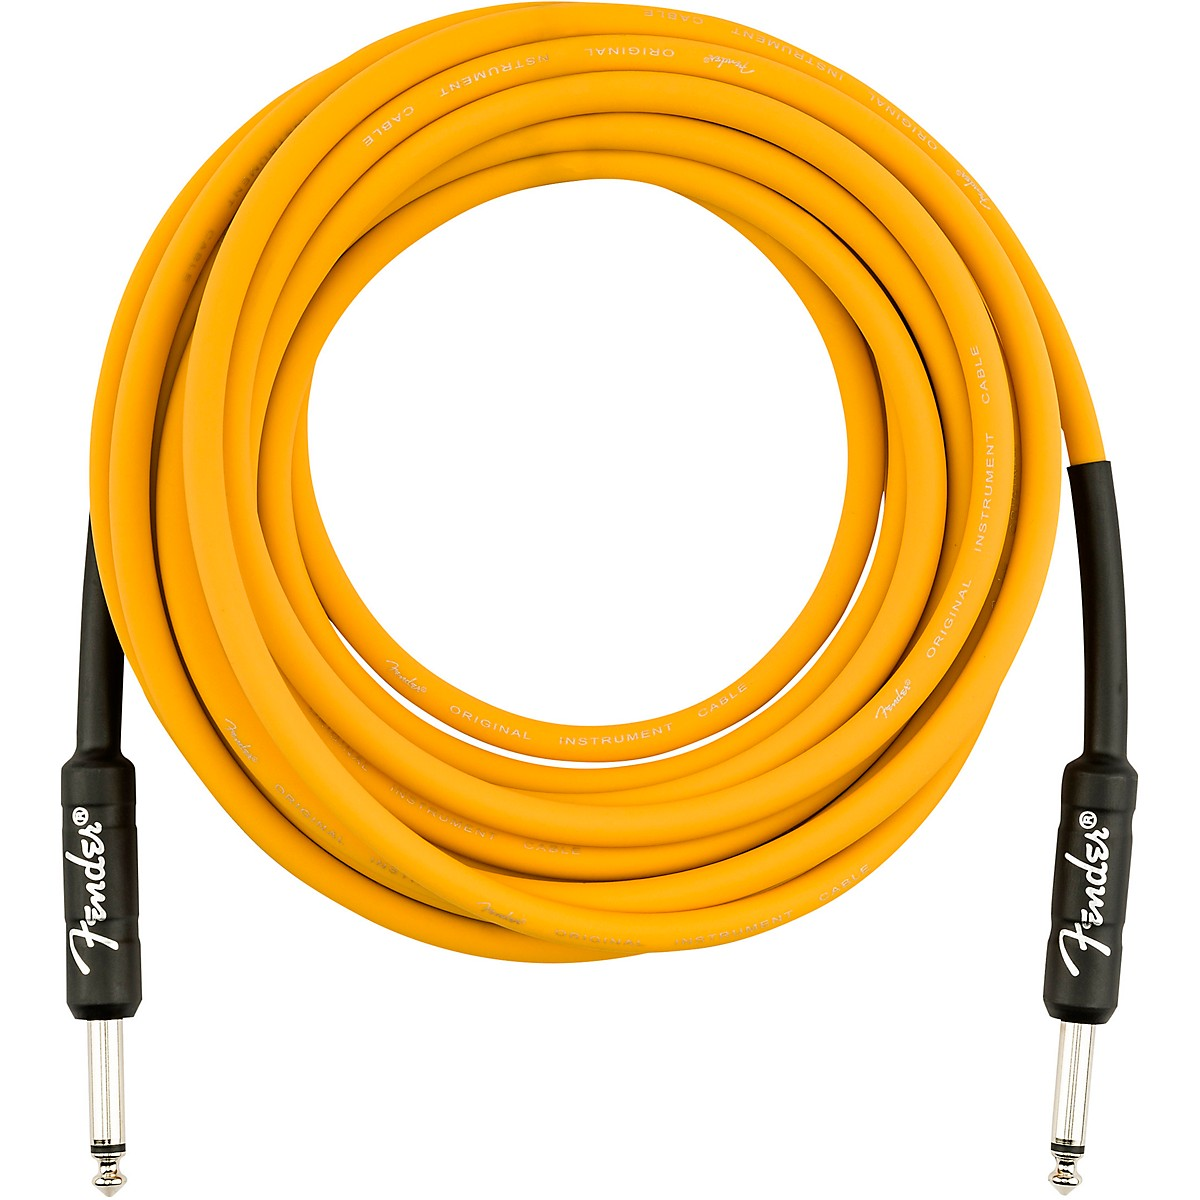 Fender Original Series Straight to Straight Limited-Edition Instrument Cable